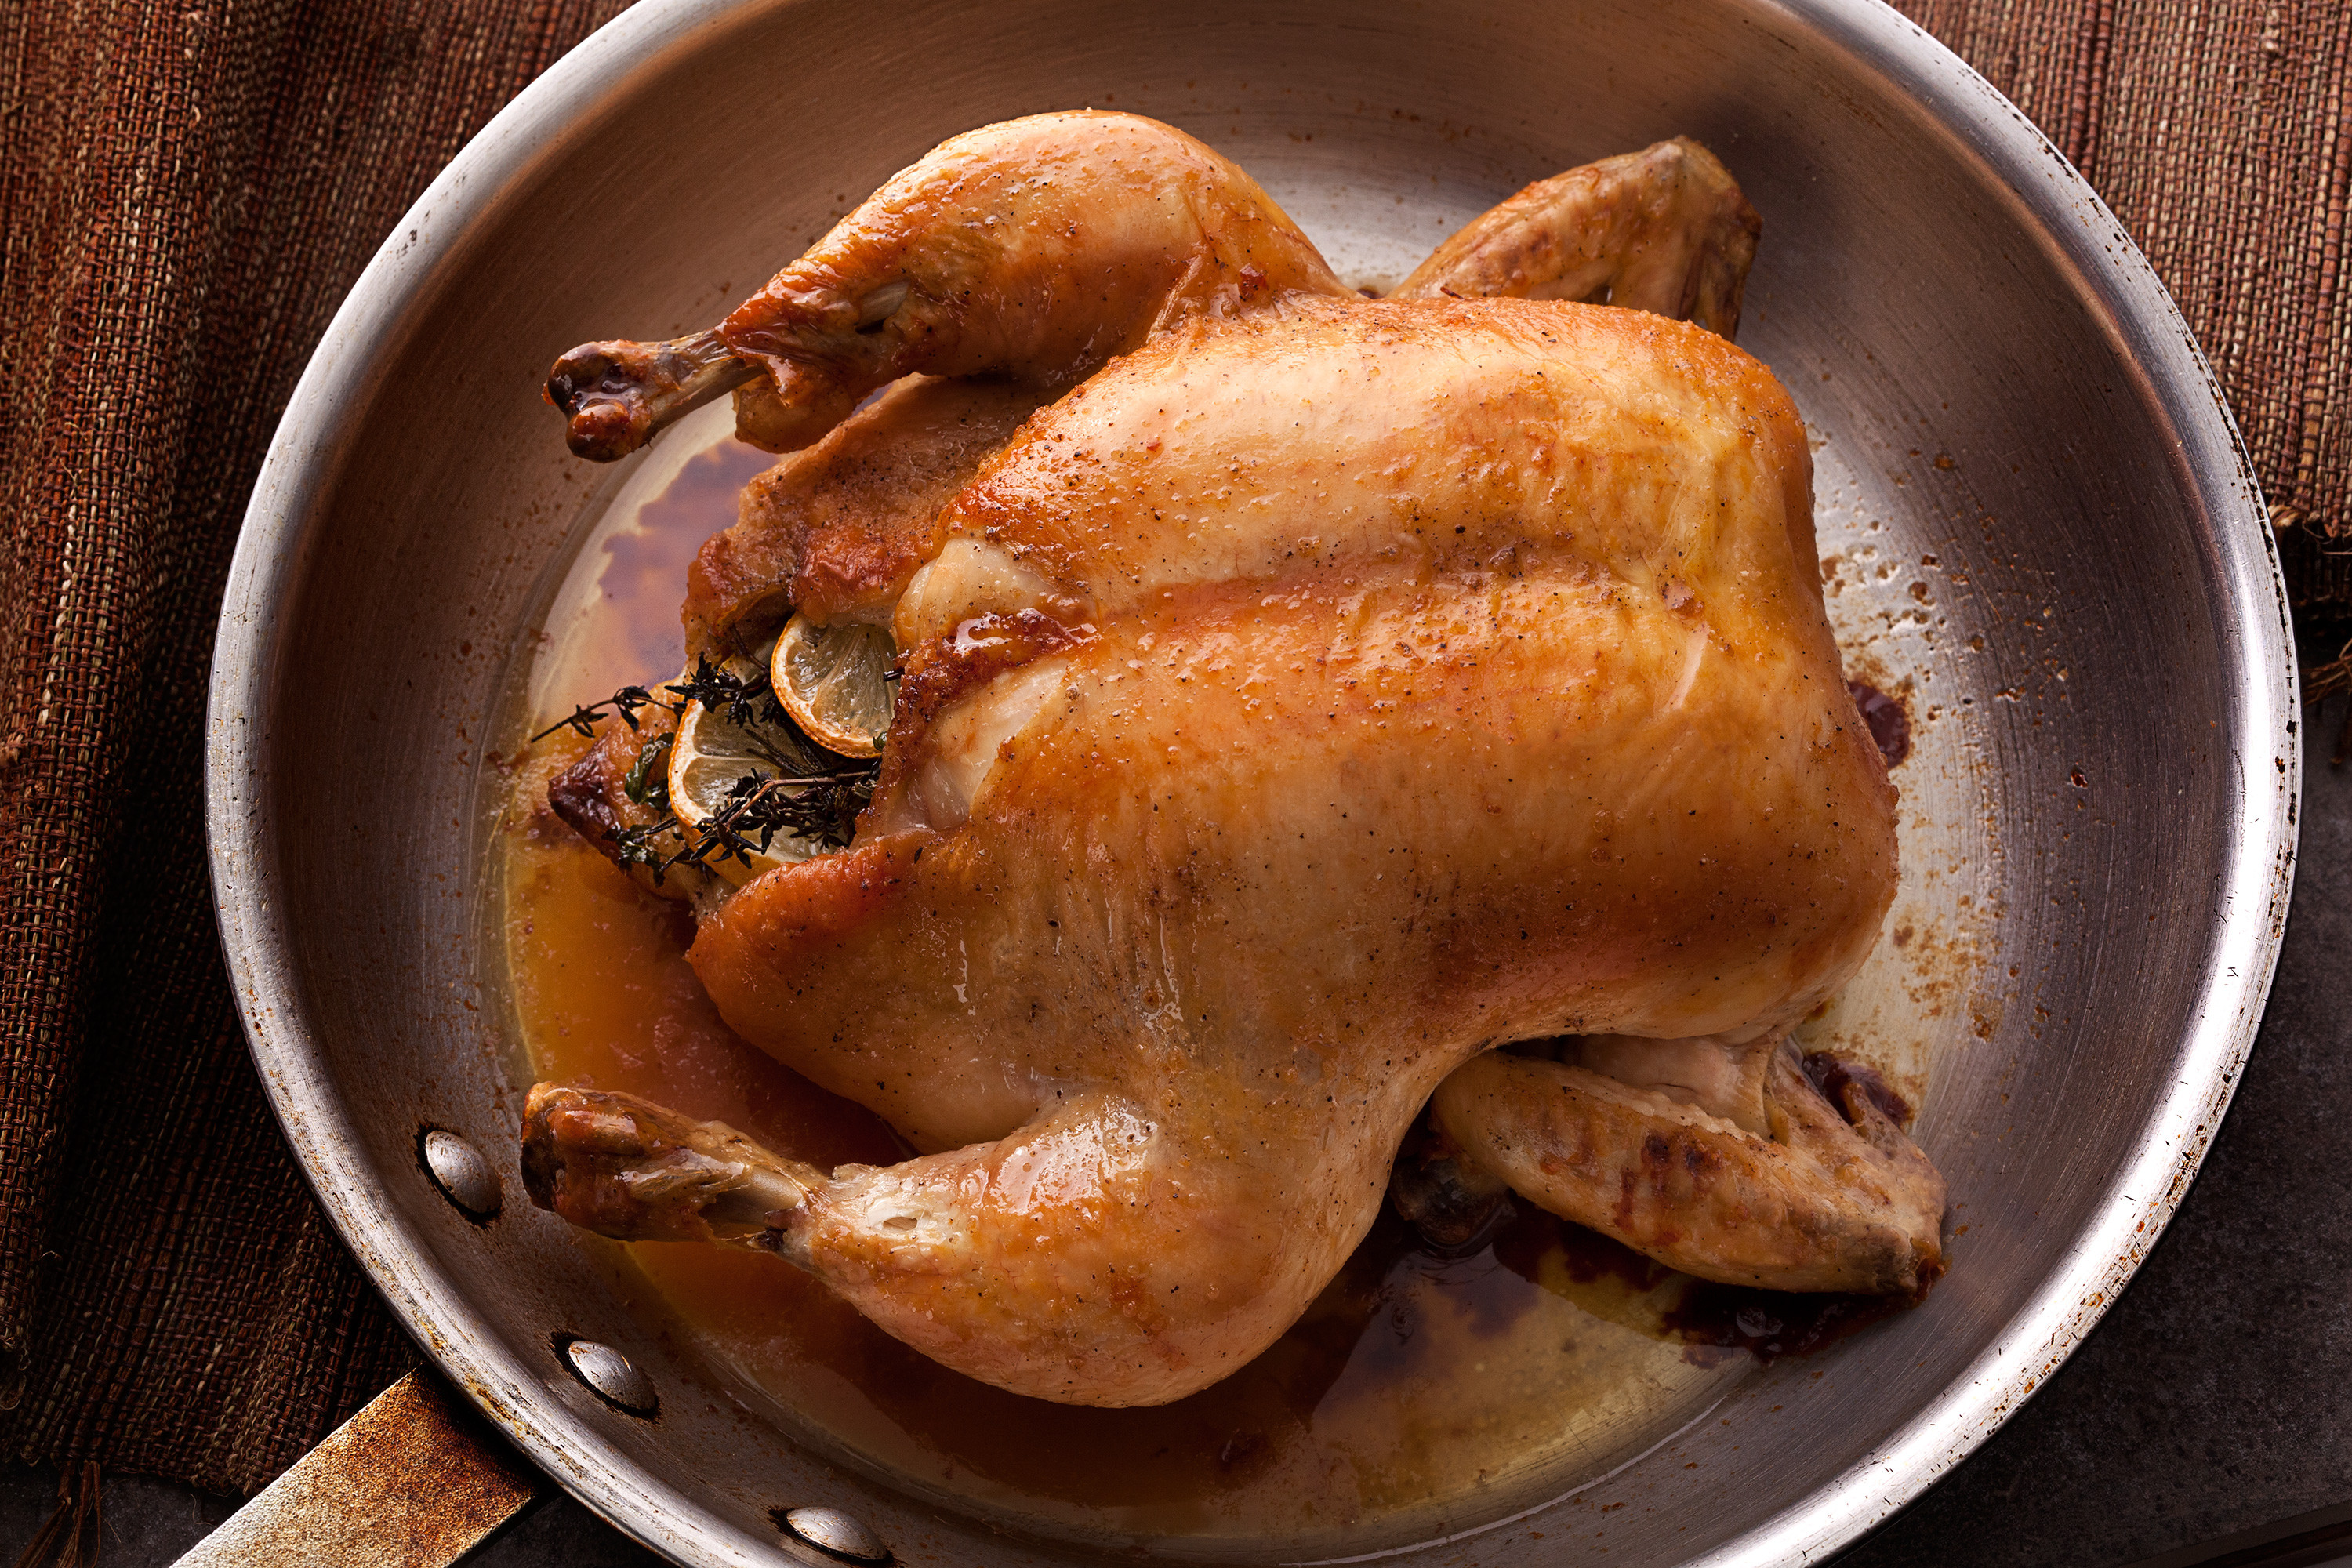 Baking A Whole Chicken  Basic Whole Roasted Chicken Recipe Chowhound